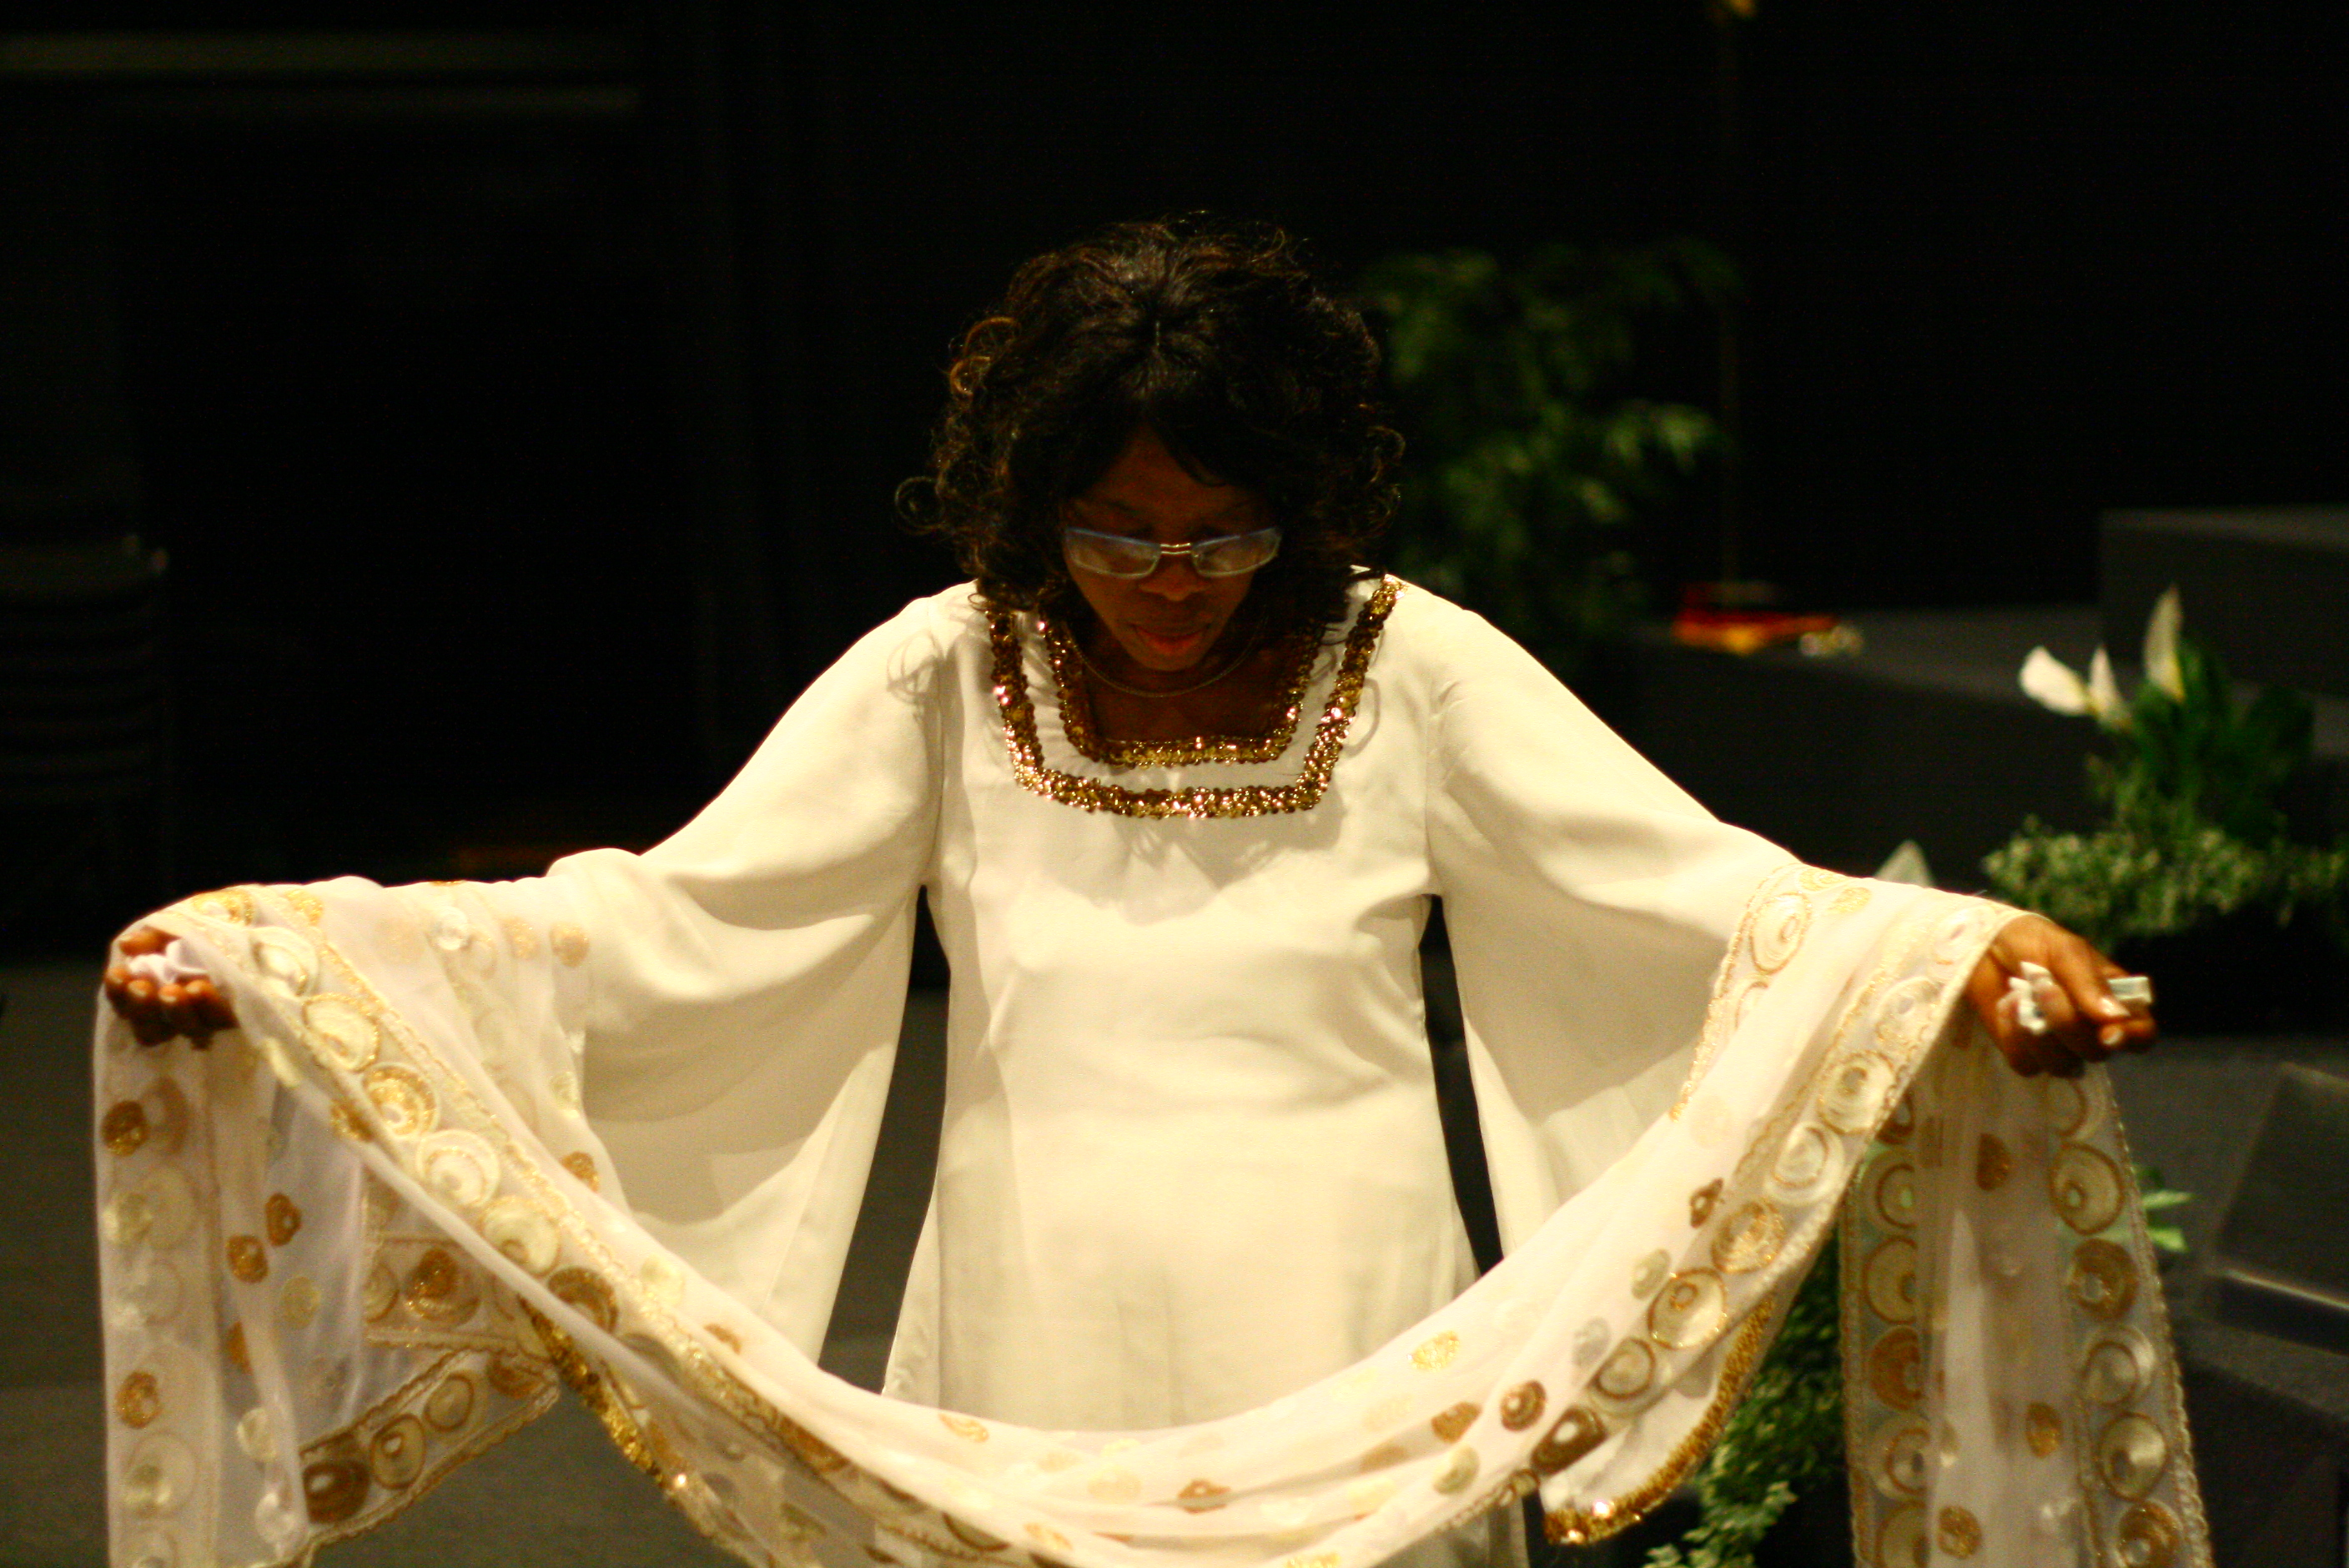 Ngozi in Worship Mode